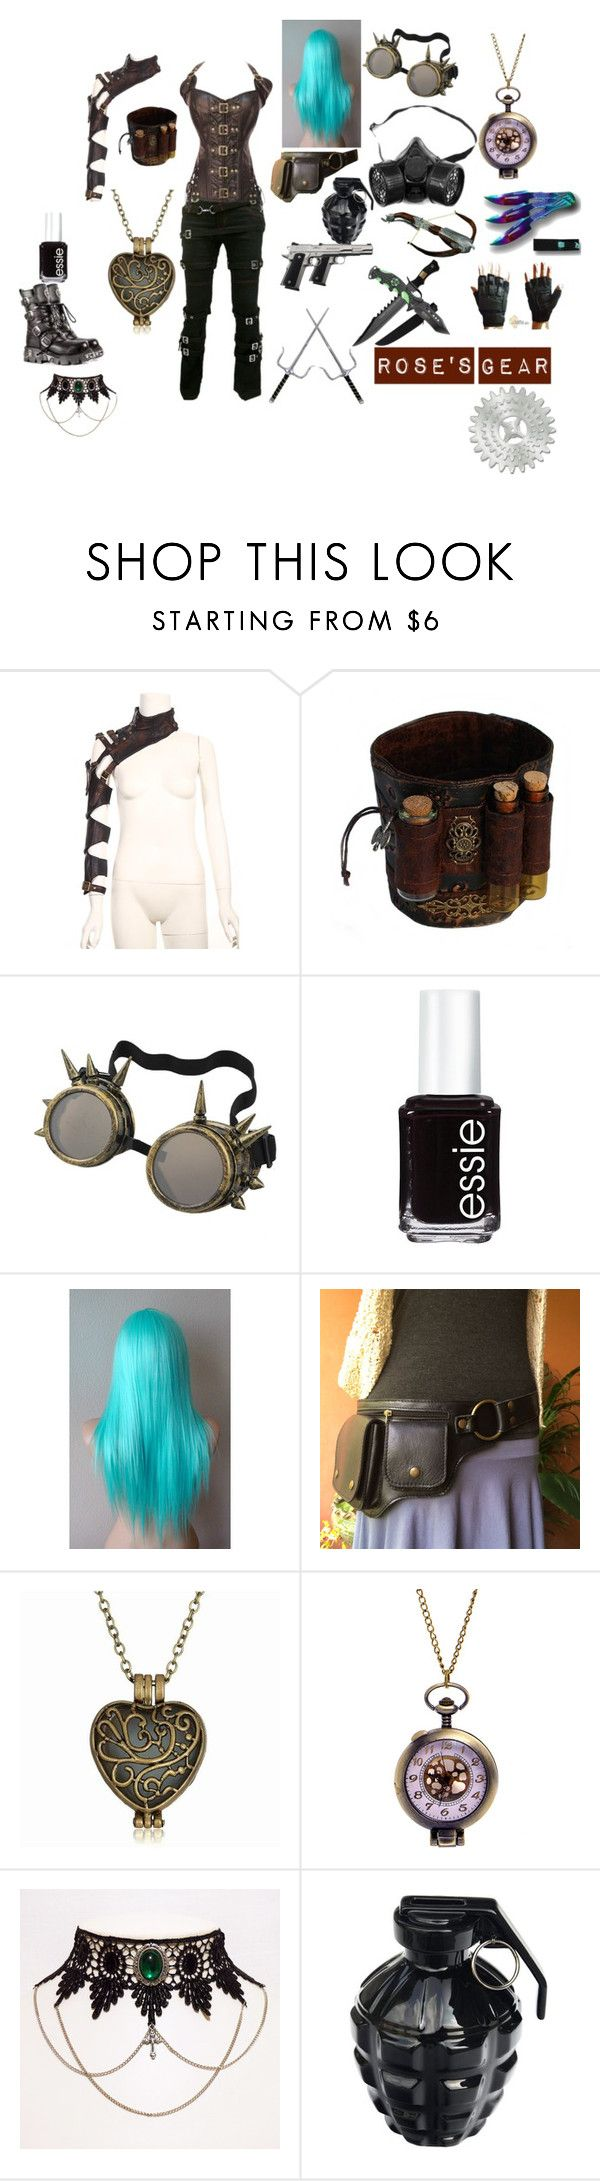 Rose's outfit #1 by wildfire99 on Polyvore featuring Essie, MollaSpace, Demonia, Poizen Industries, women's clothing, women's fashion, women, female, woman and misses